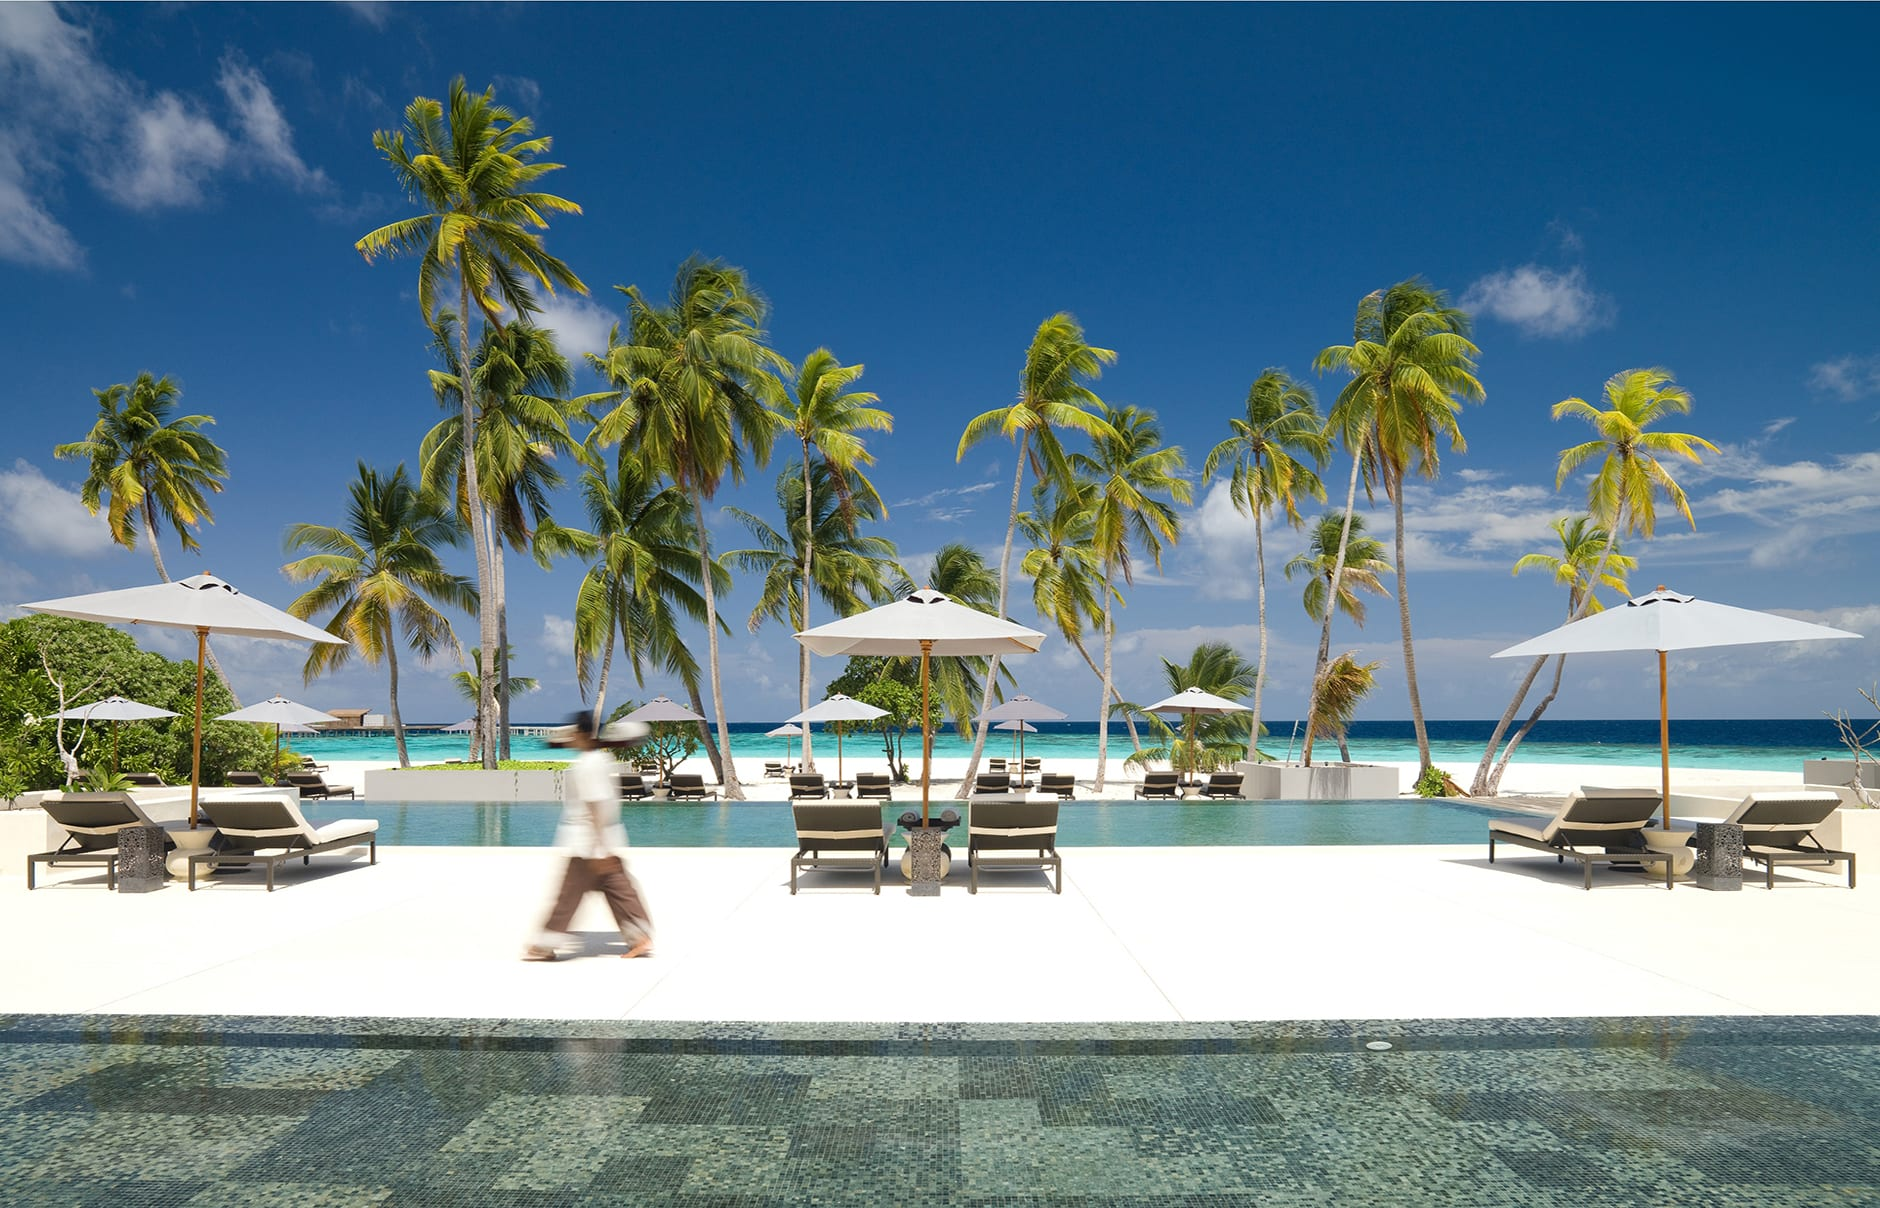 Park Hyatt Maldives, Hadahaa. Main pool © Hyatt Corporation